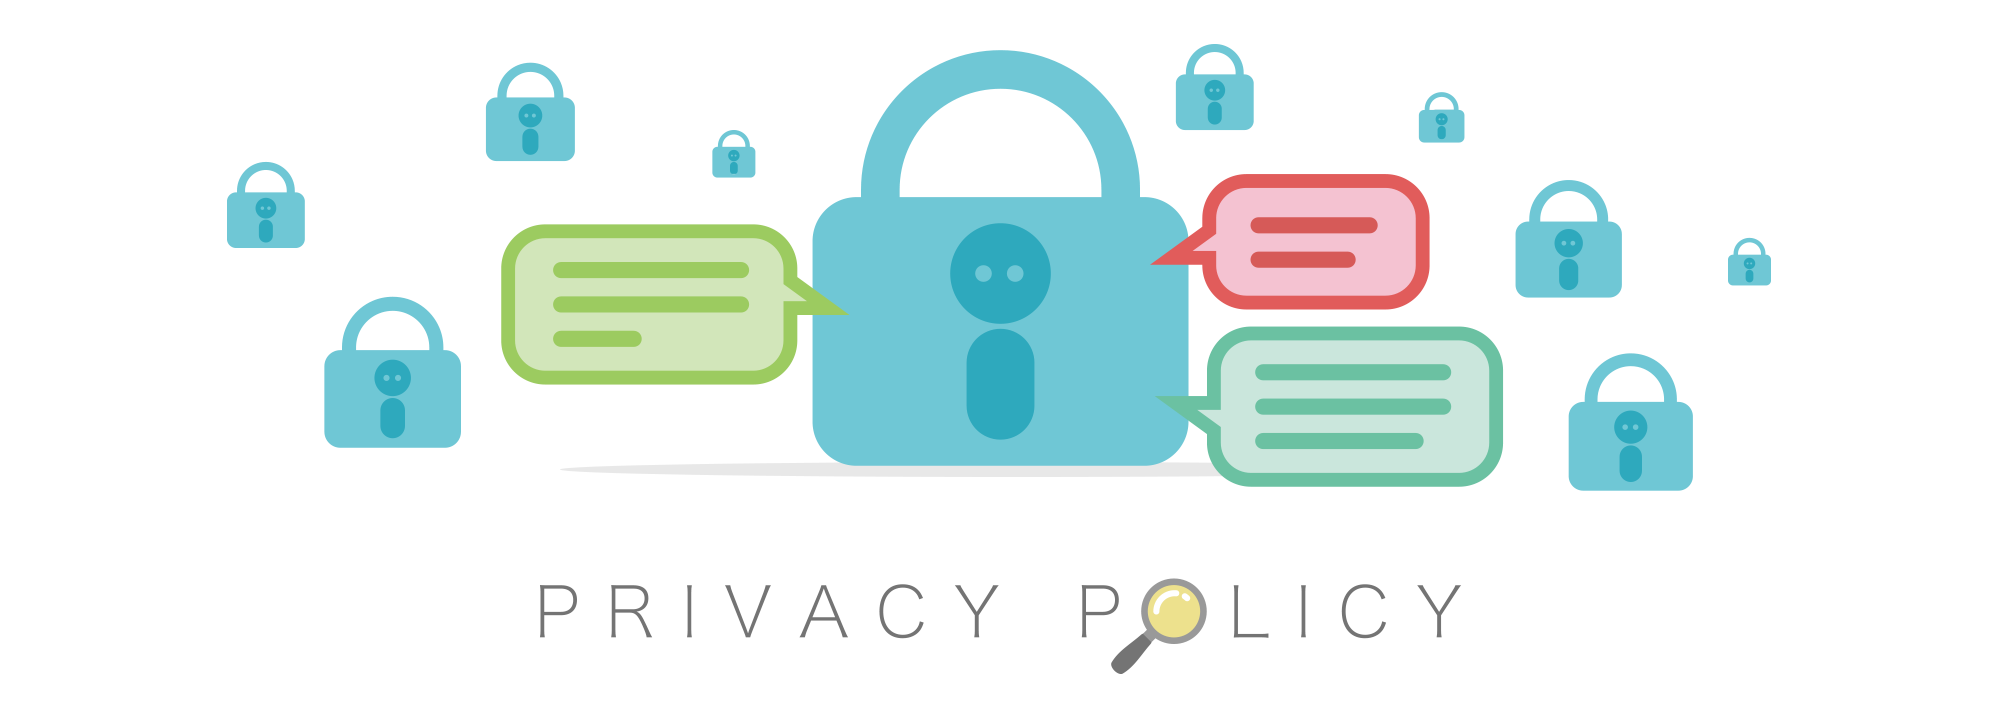 privacy_policy_image_2000_00